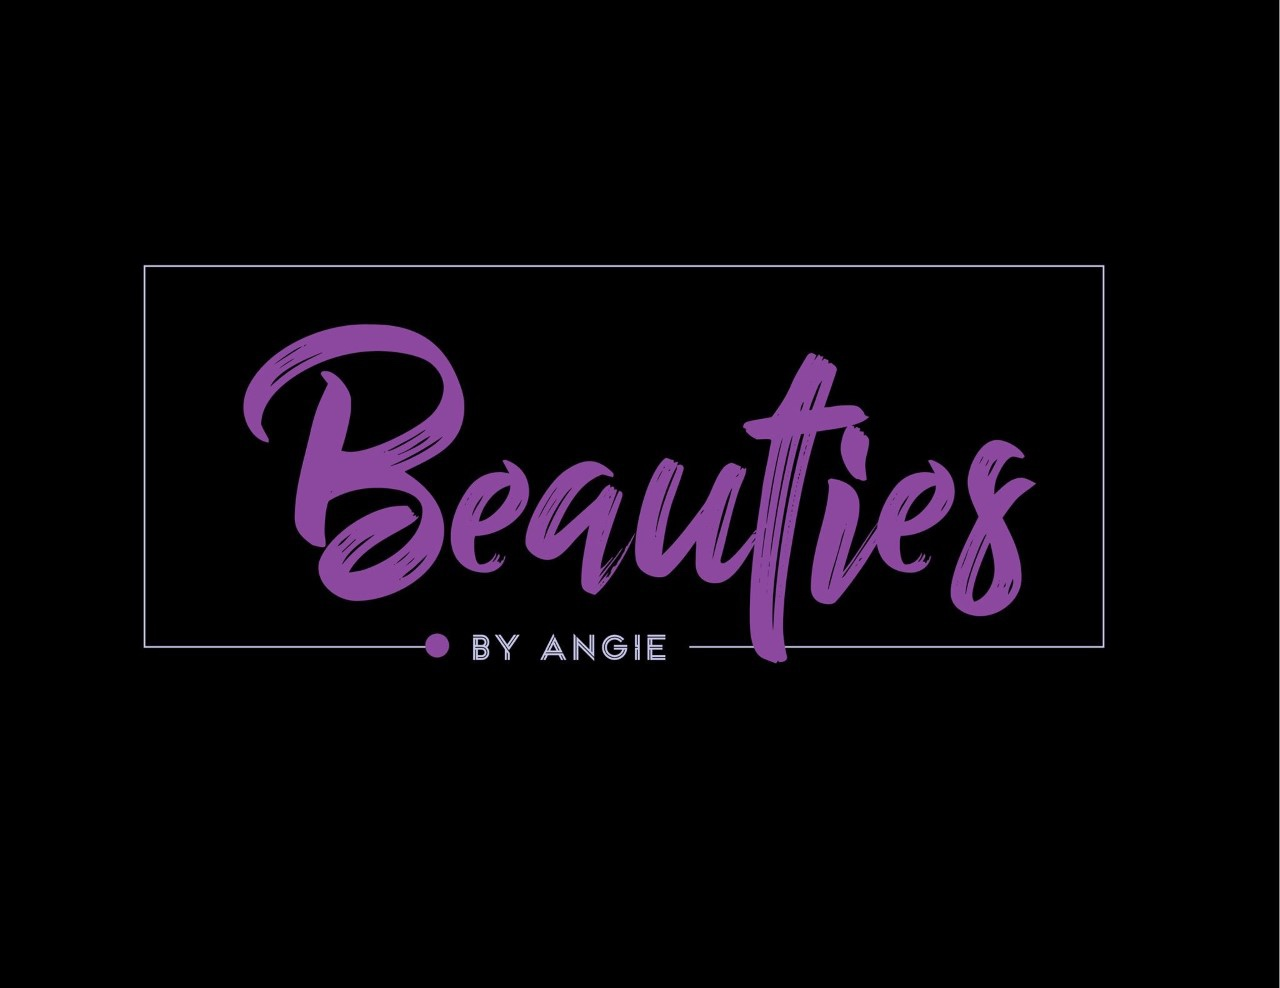 Beauties by Angie Toronto.jpg